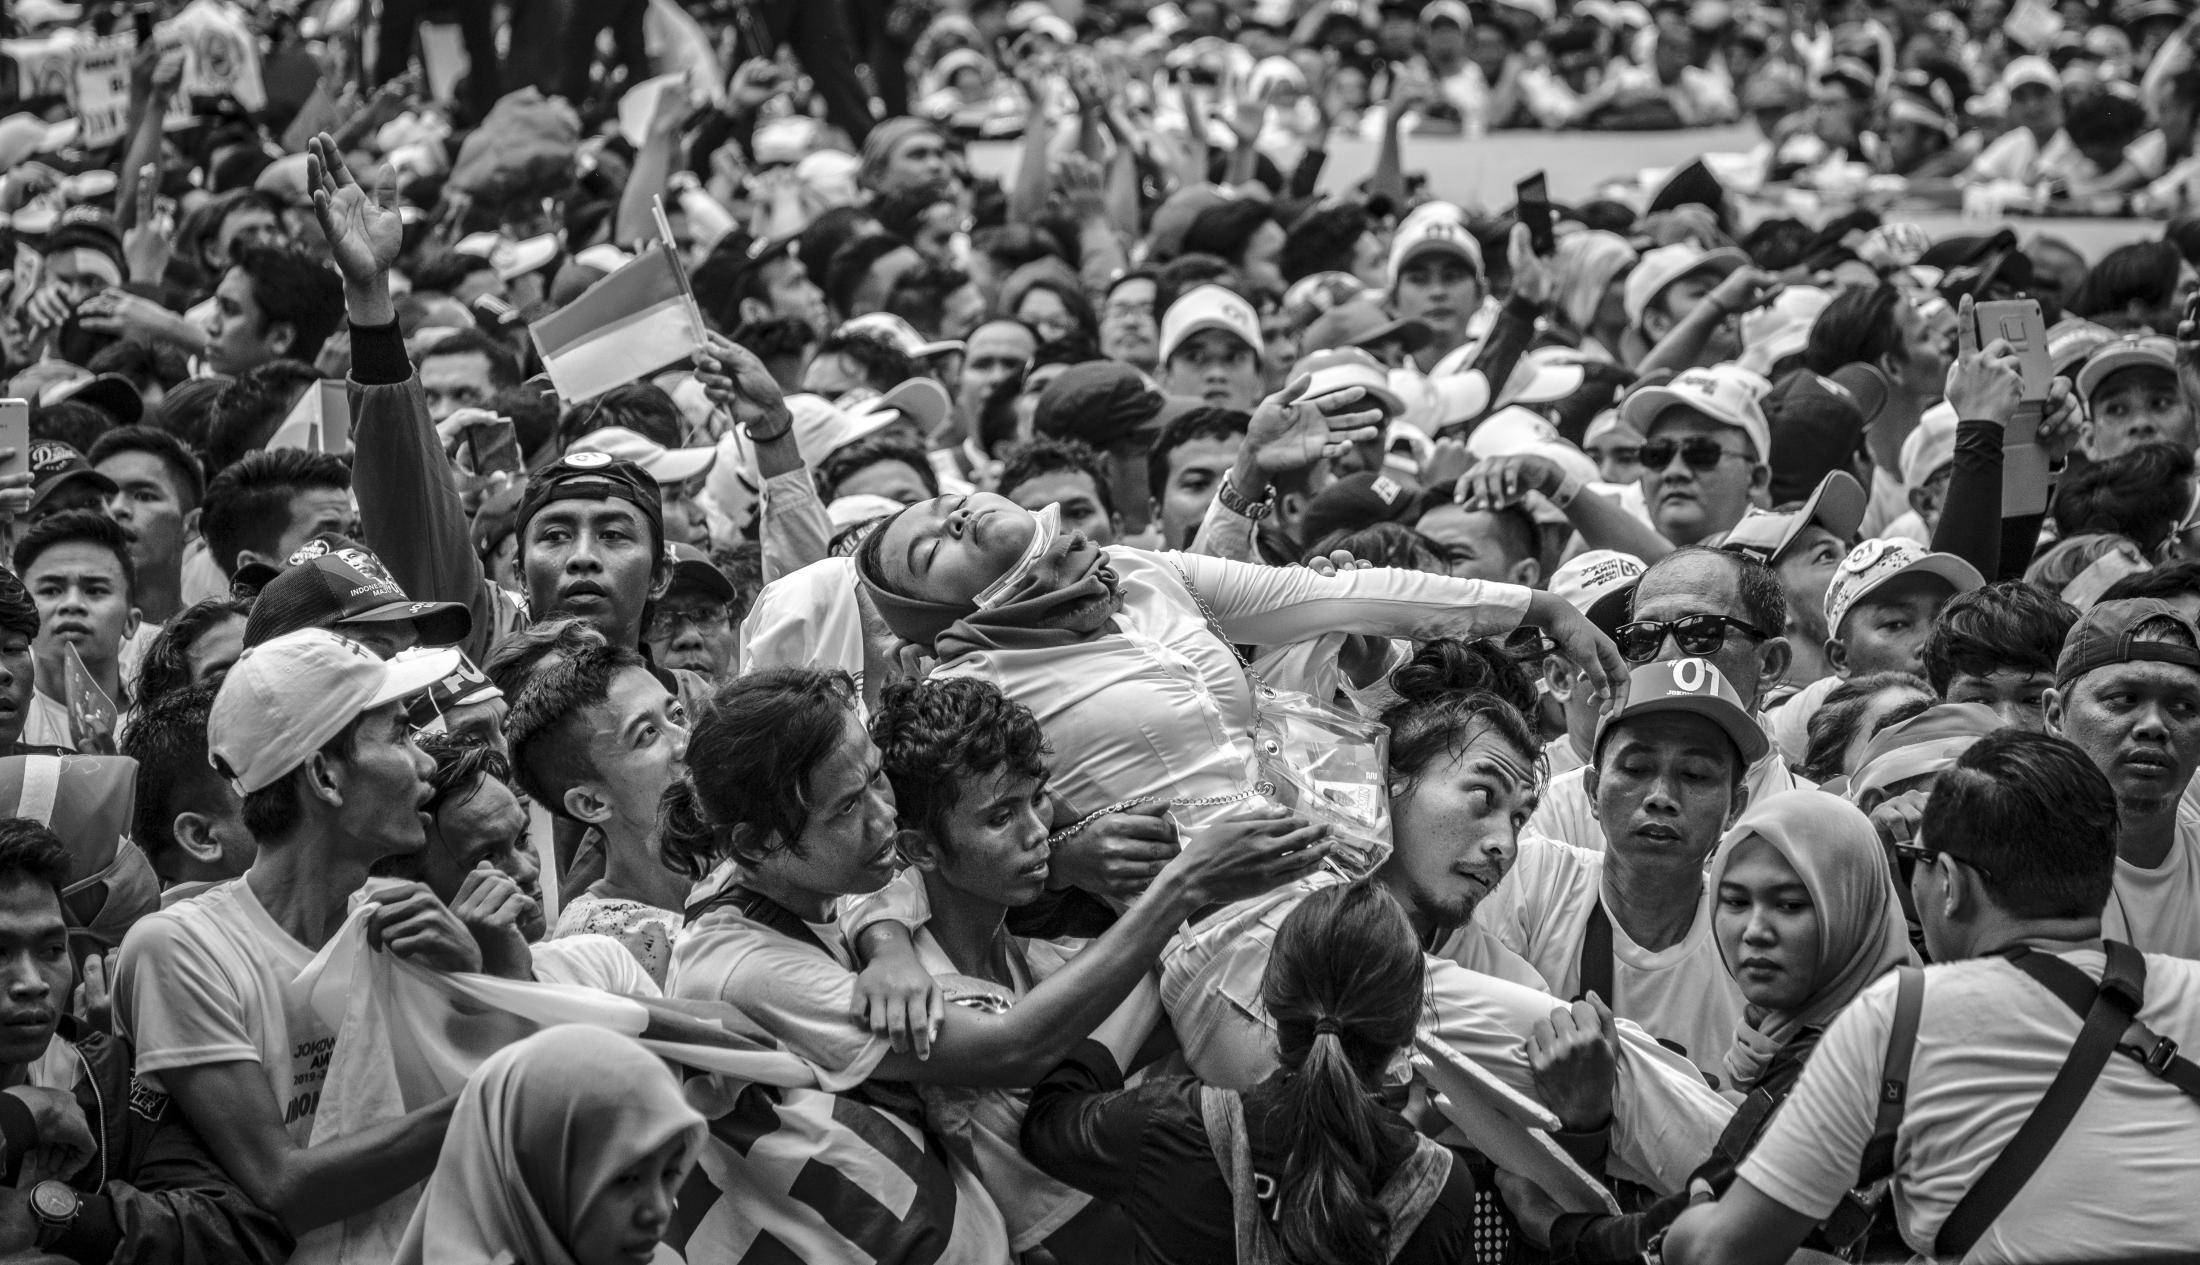 An unconscious woman suffering from heat stroke is been carried out of the packed crowd at a campaign rally for Indonesia's incumbent presidential candidate Joko Widodo at Gelora Bung Karno stadium in Jakarta, Indonesia, April 13, 2019.